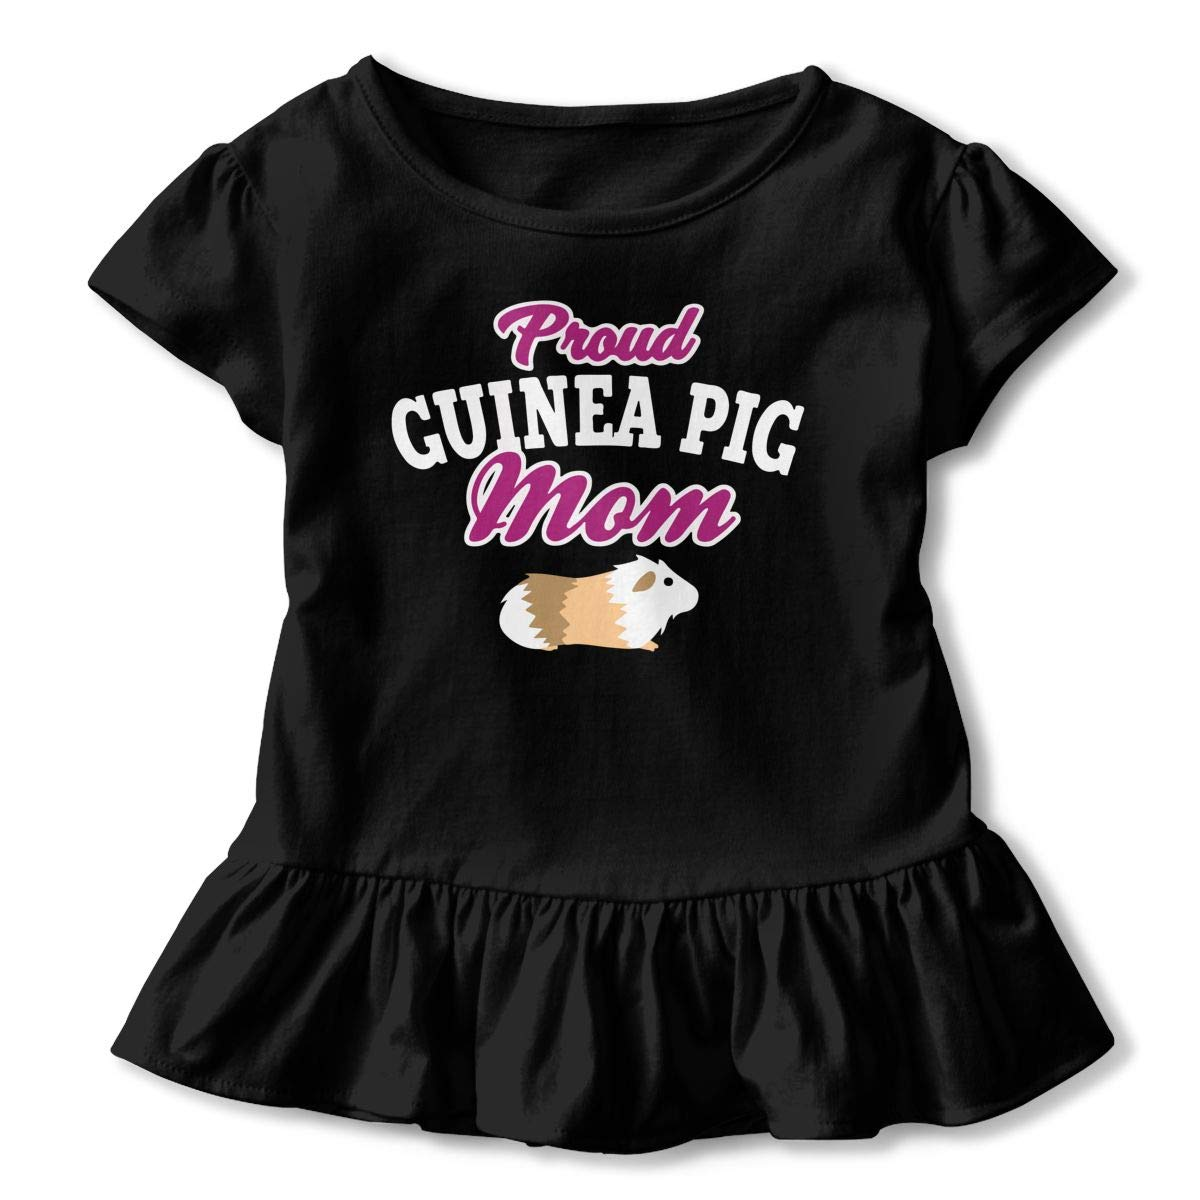 Little Girls Proud Guinea Pig Mom Funny Short Sleeve Cotton T Shirts Basic Tops Tee Clothes